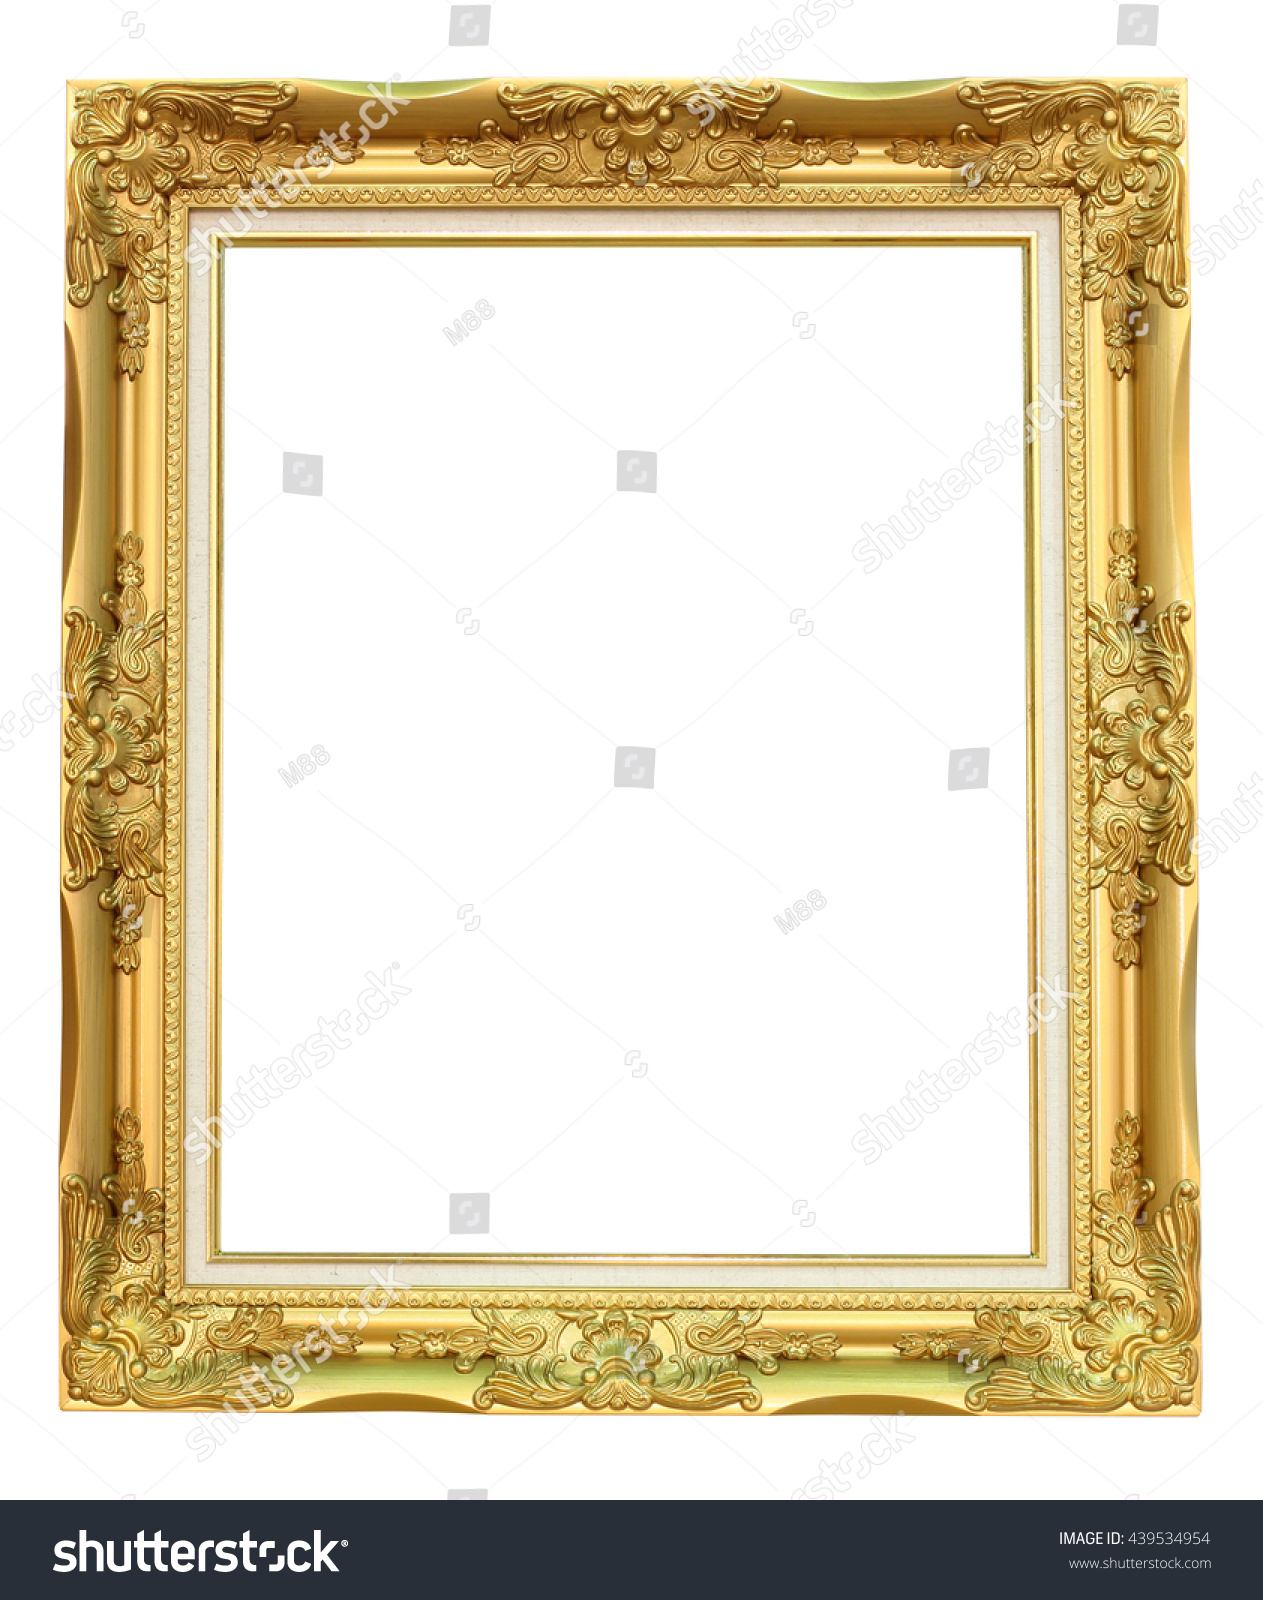 Wooden Gold Vintage Frame Painting Picture Stock Photo (Edit Now ...